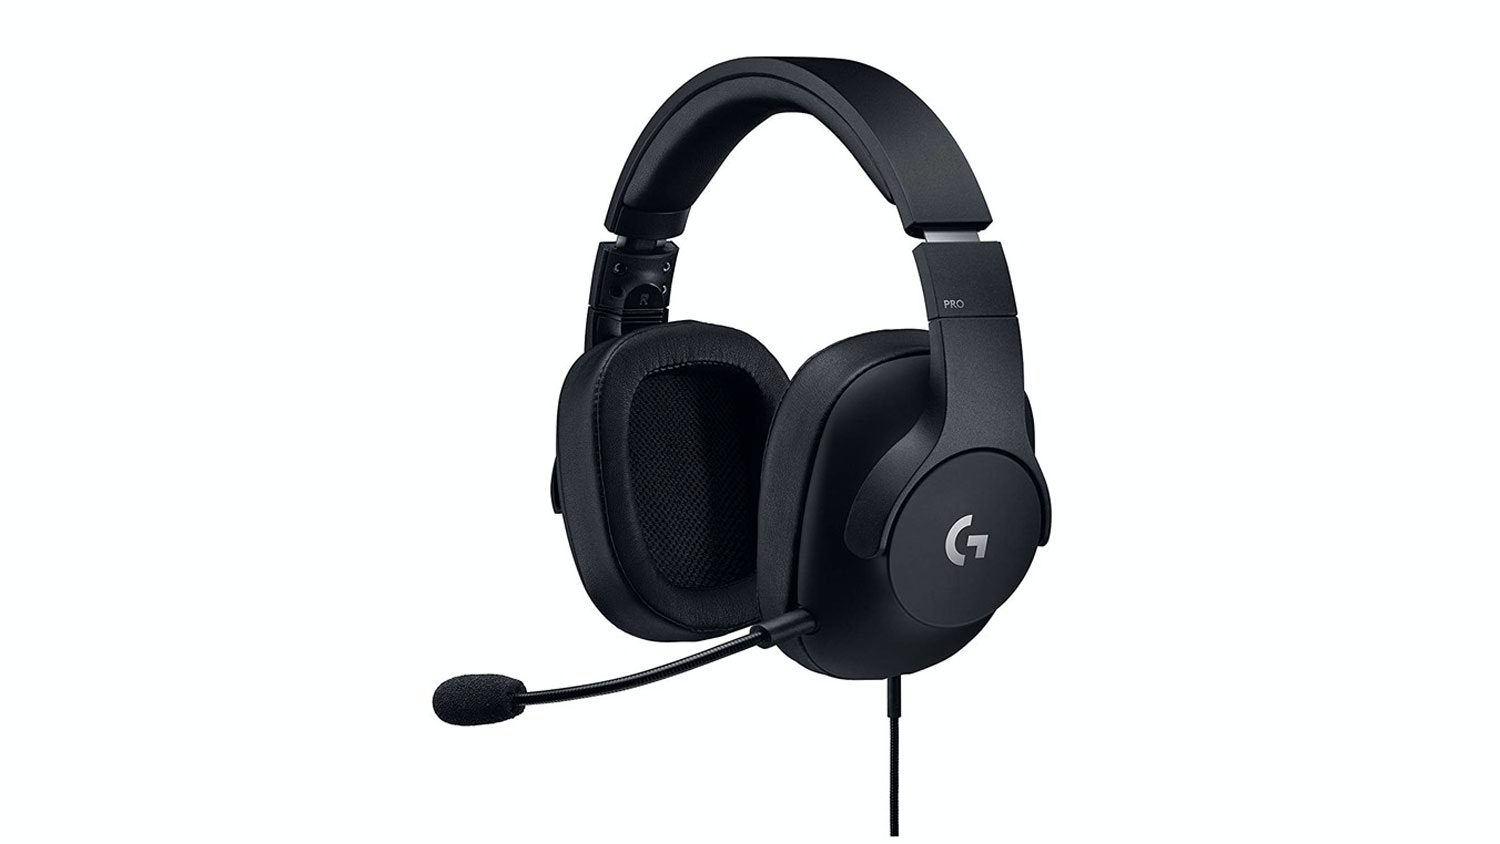 Logitech G Pro Wired Gaming Headset